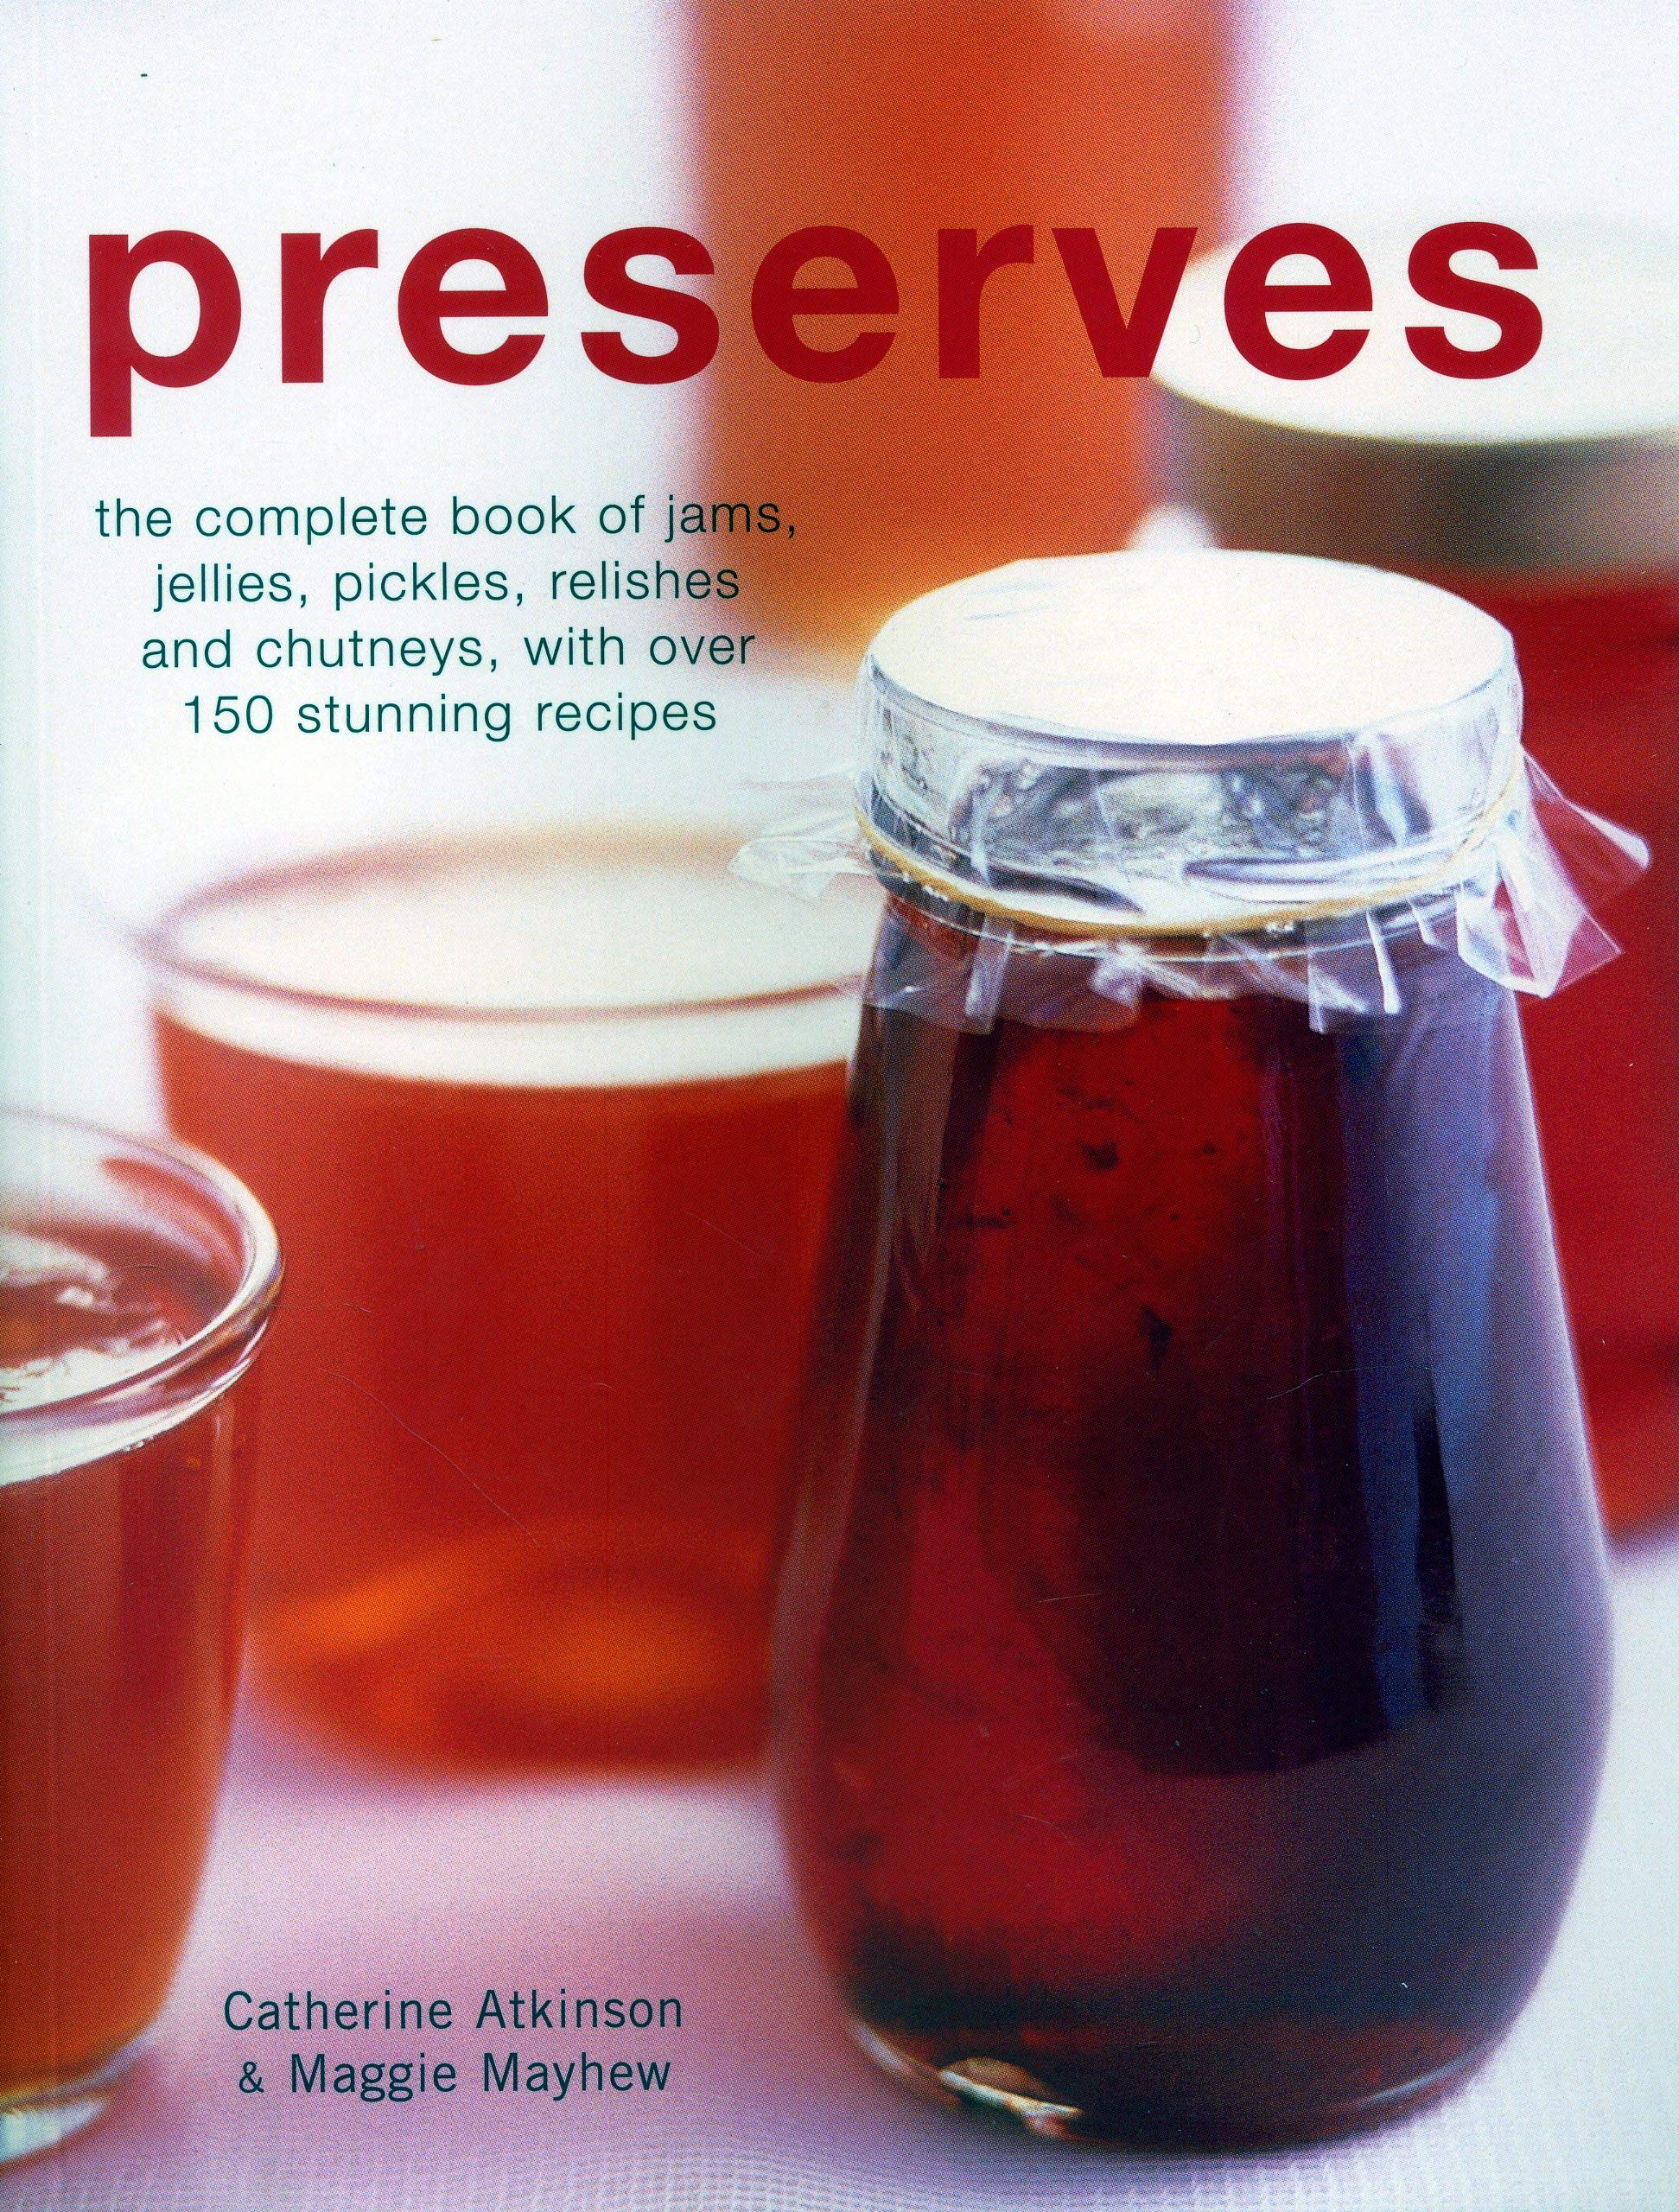 Download Preserves: The Complete Book Of Jams, Jellies, Pickles, Relishes And Chutneys, With Over 150 Stunning Recipes ebook